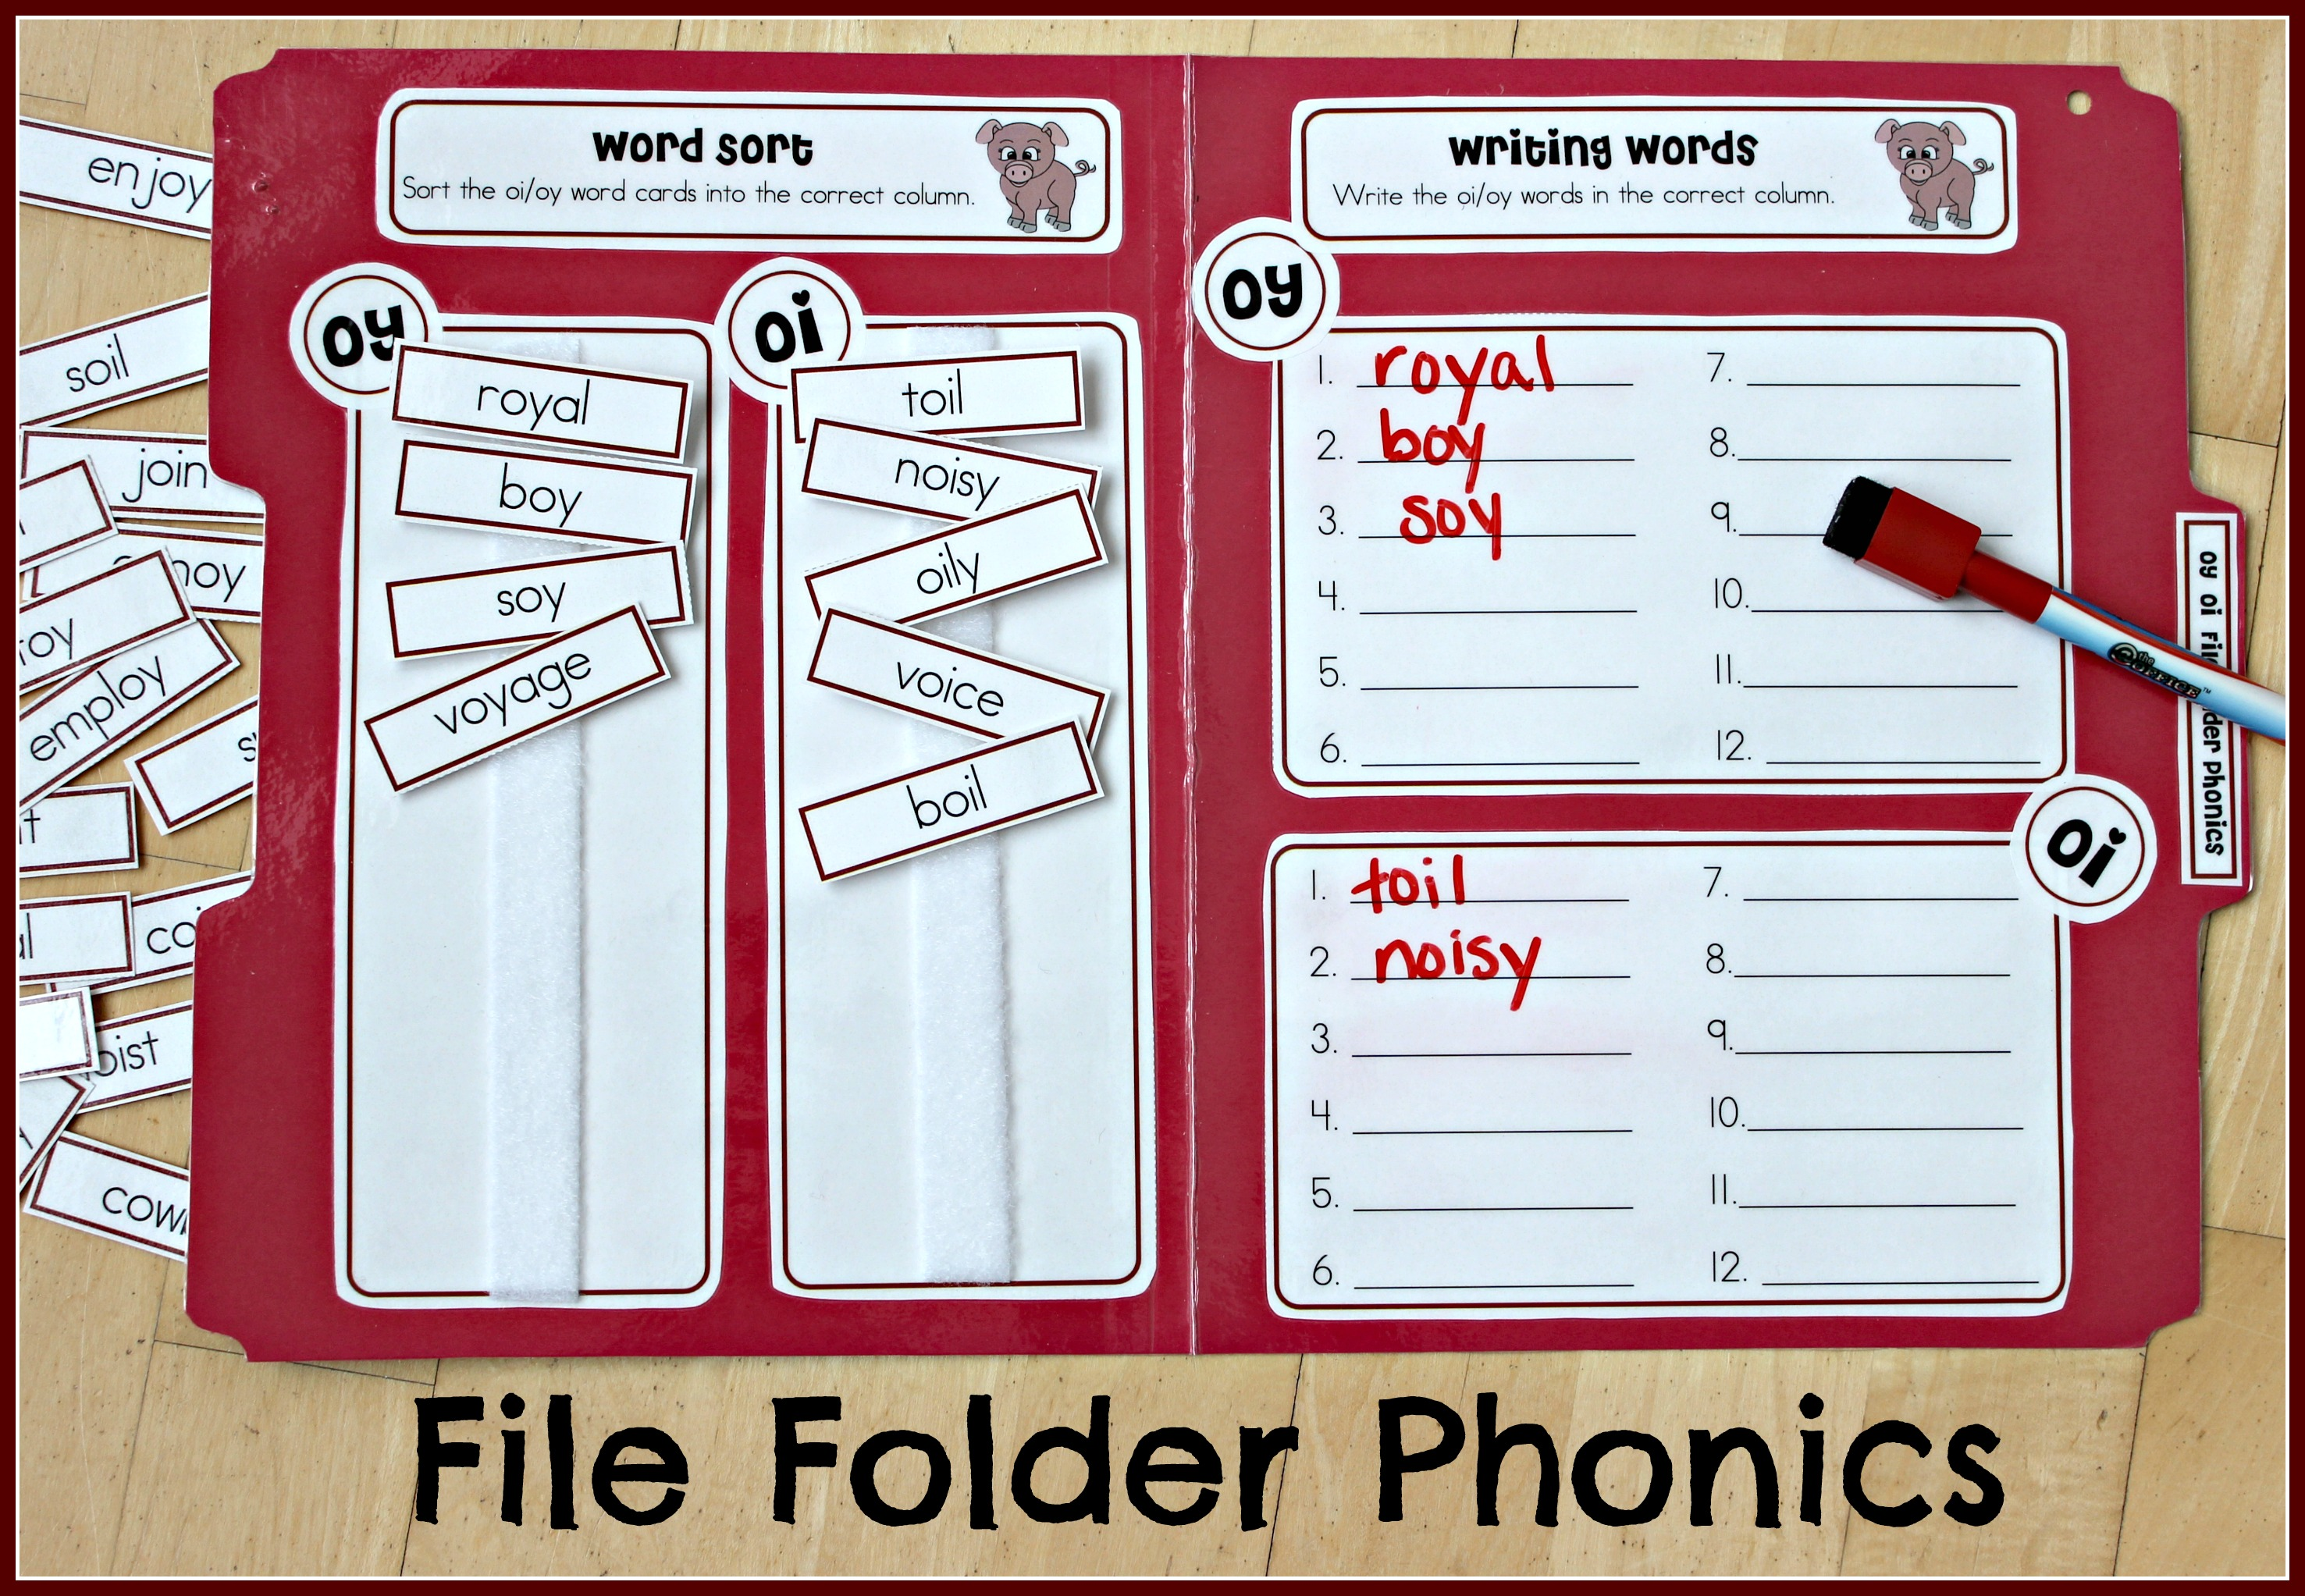 File Folder Phonics for oi and oy Make Take Teach – Word Sort Templates